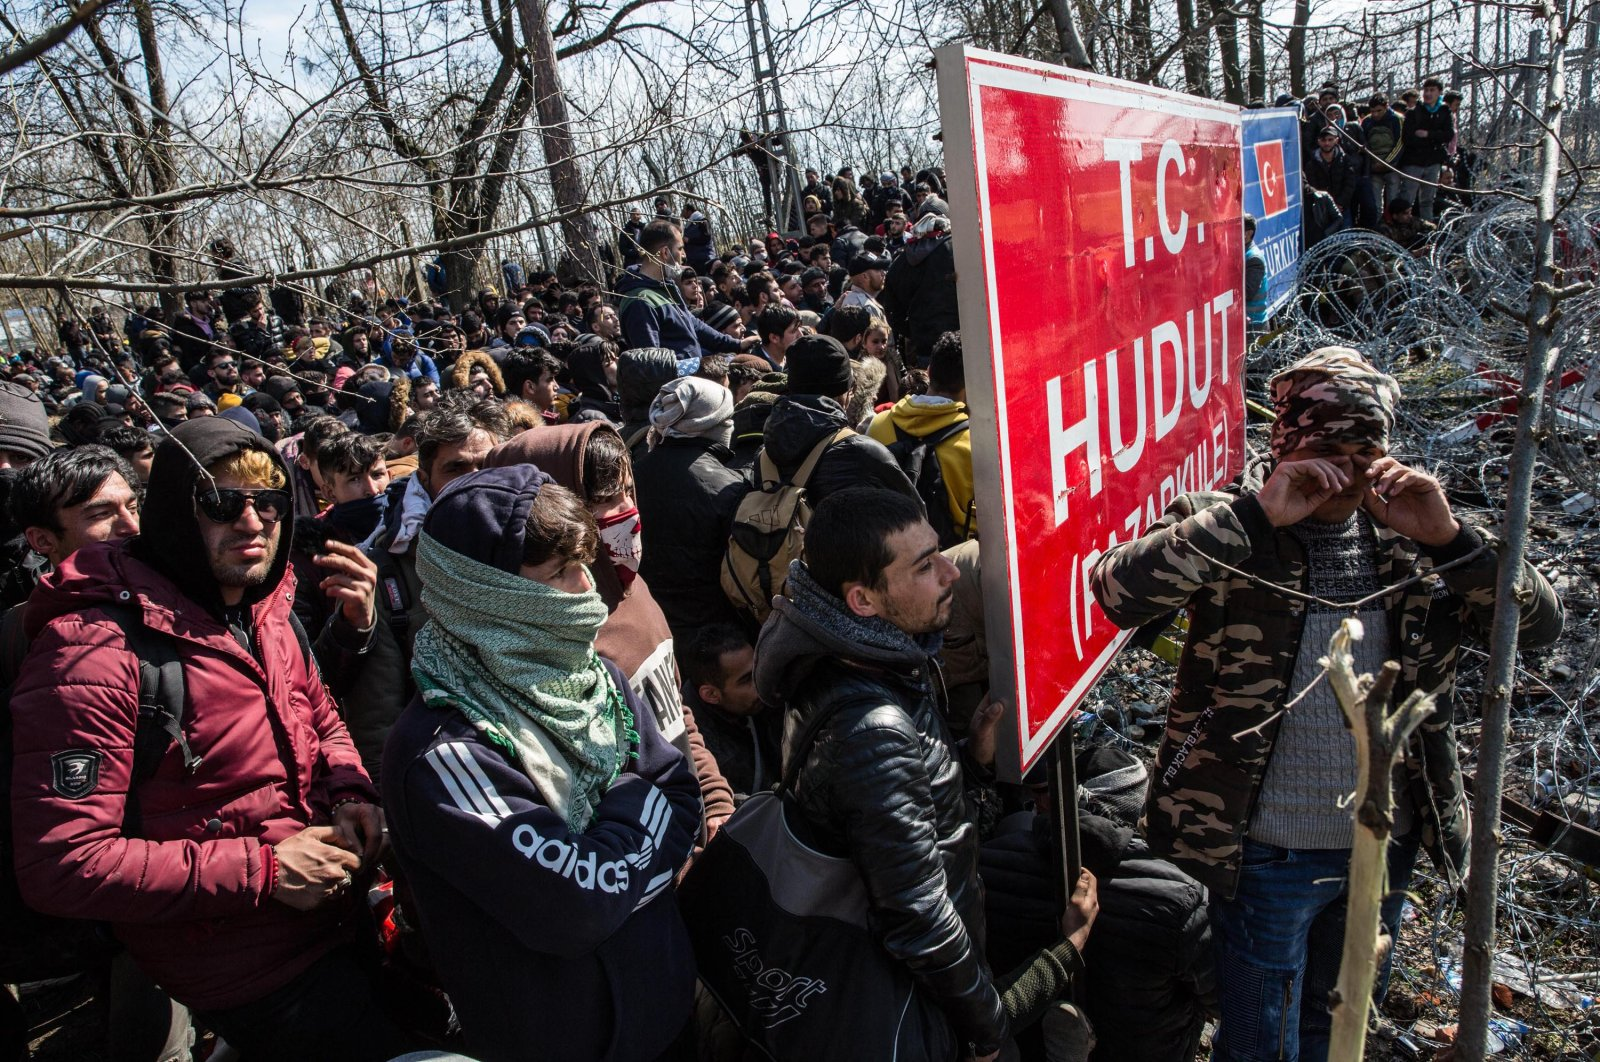 Migrants and refugees continue to wait amid bleak conditions on the Turkey-Greece border for 28 days, in the hope that Greece will open the doors to asylum in the EU. (DHA Photo)